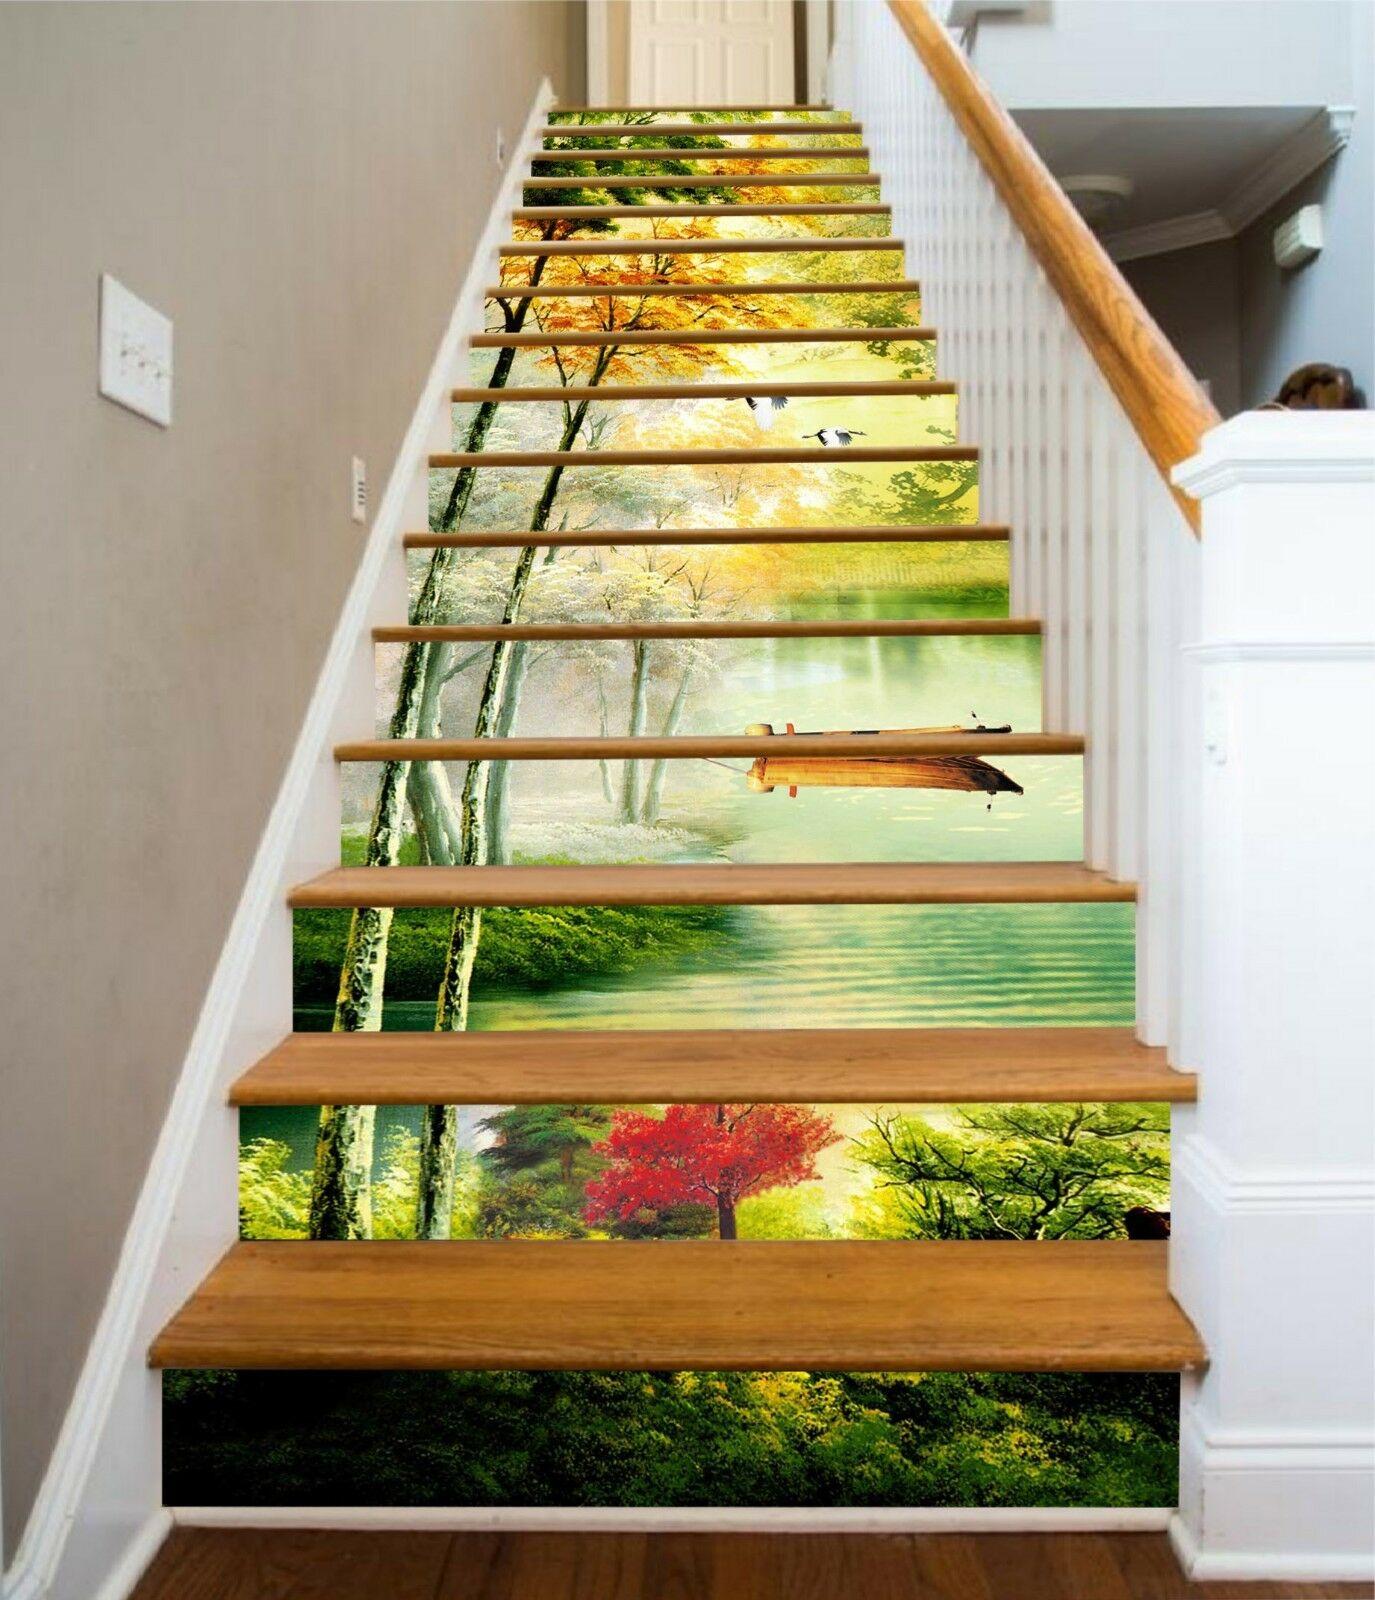 3D Ferry Lake Trees Stair Risers Decoration Photo Mural Vinyl Decal Wallpaper UK